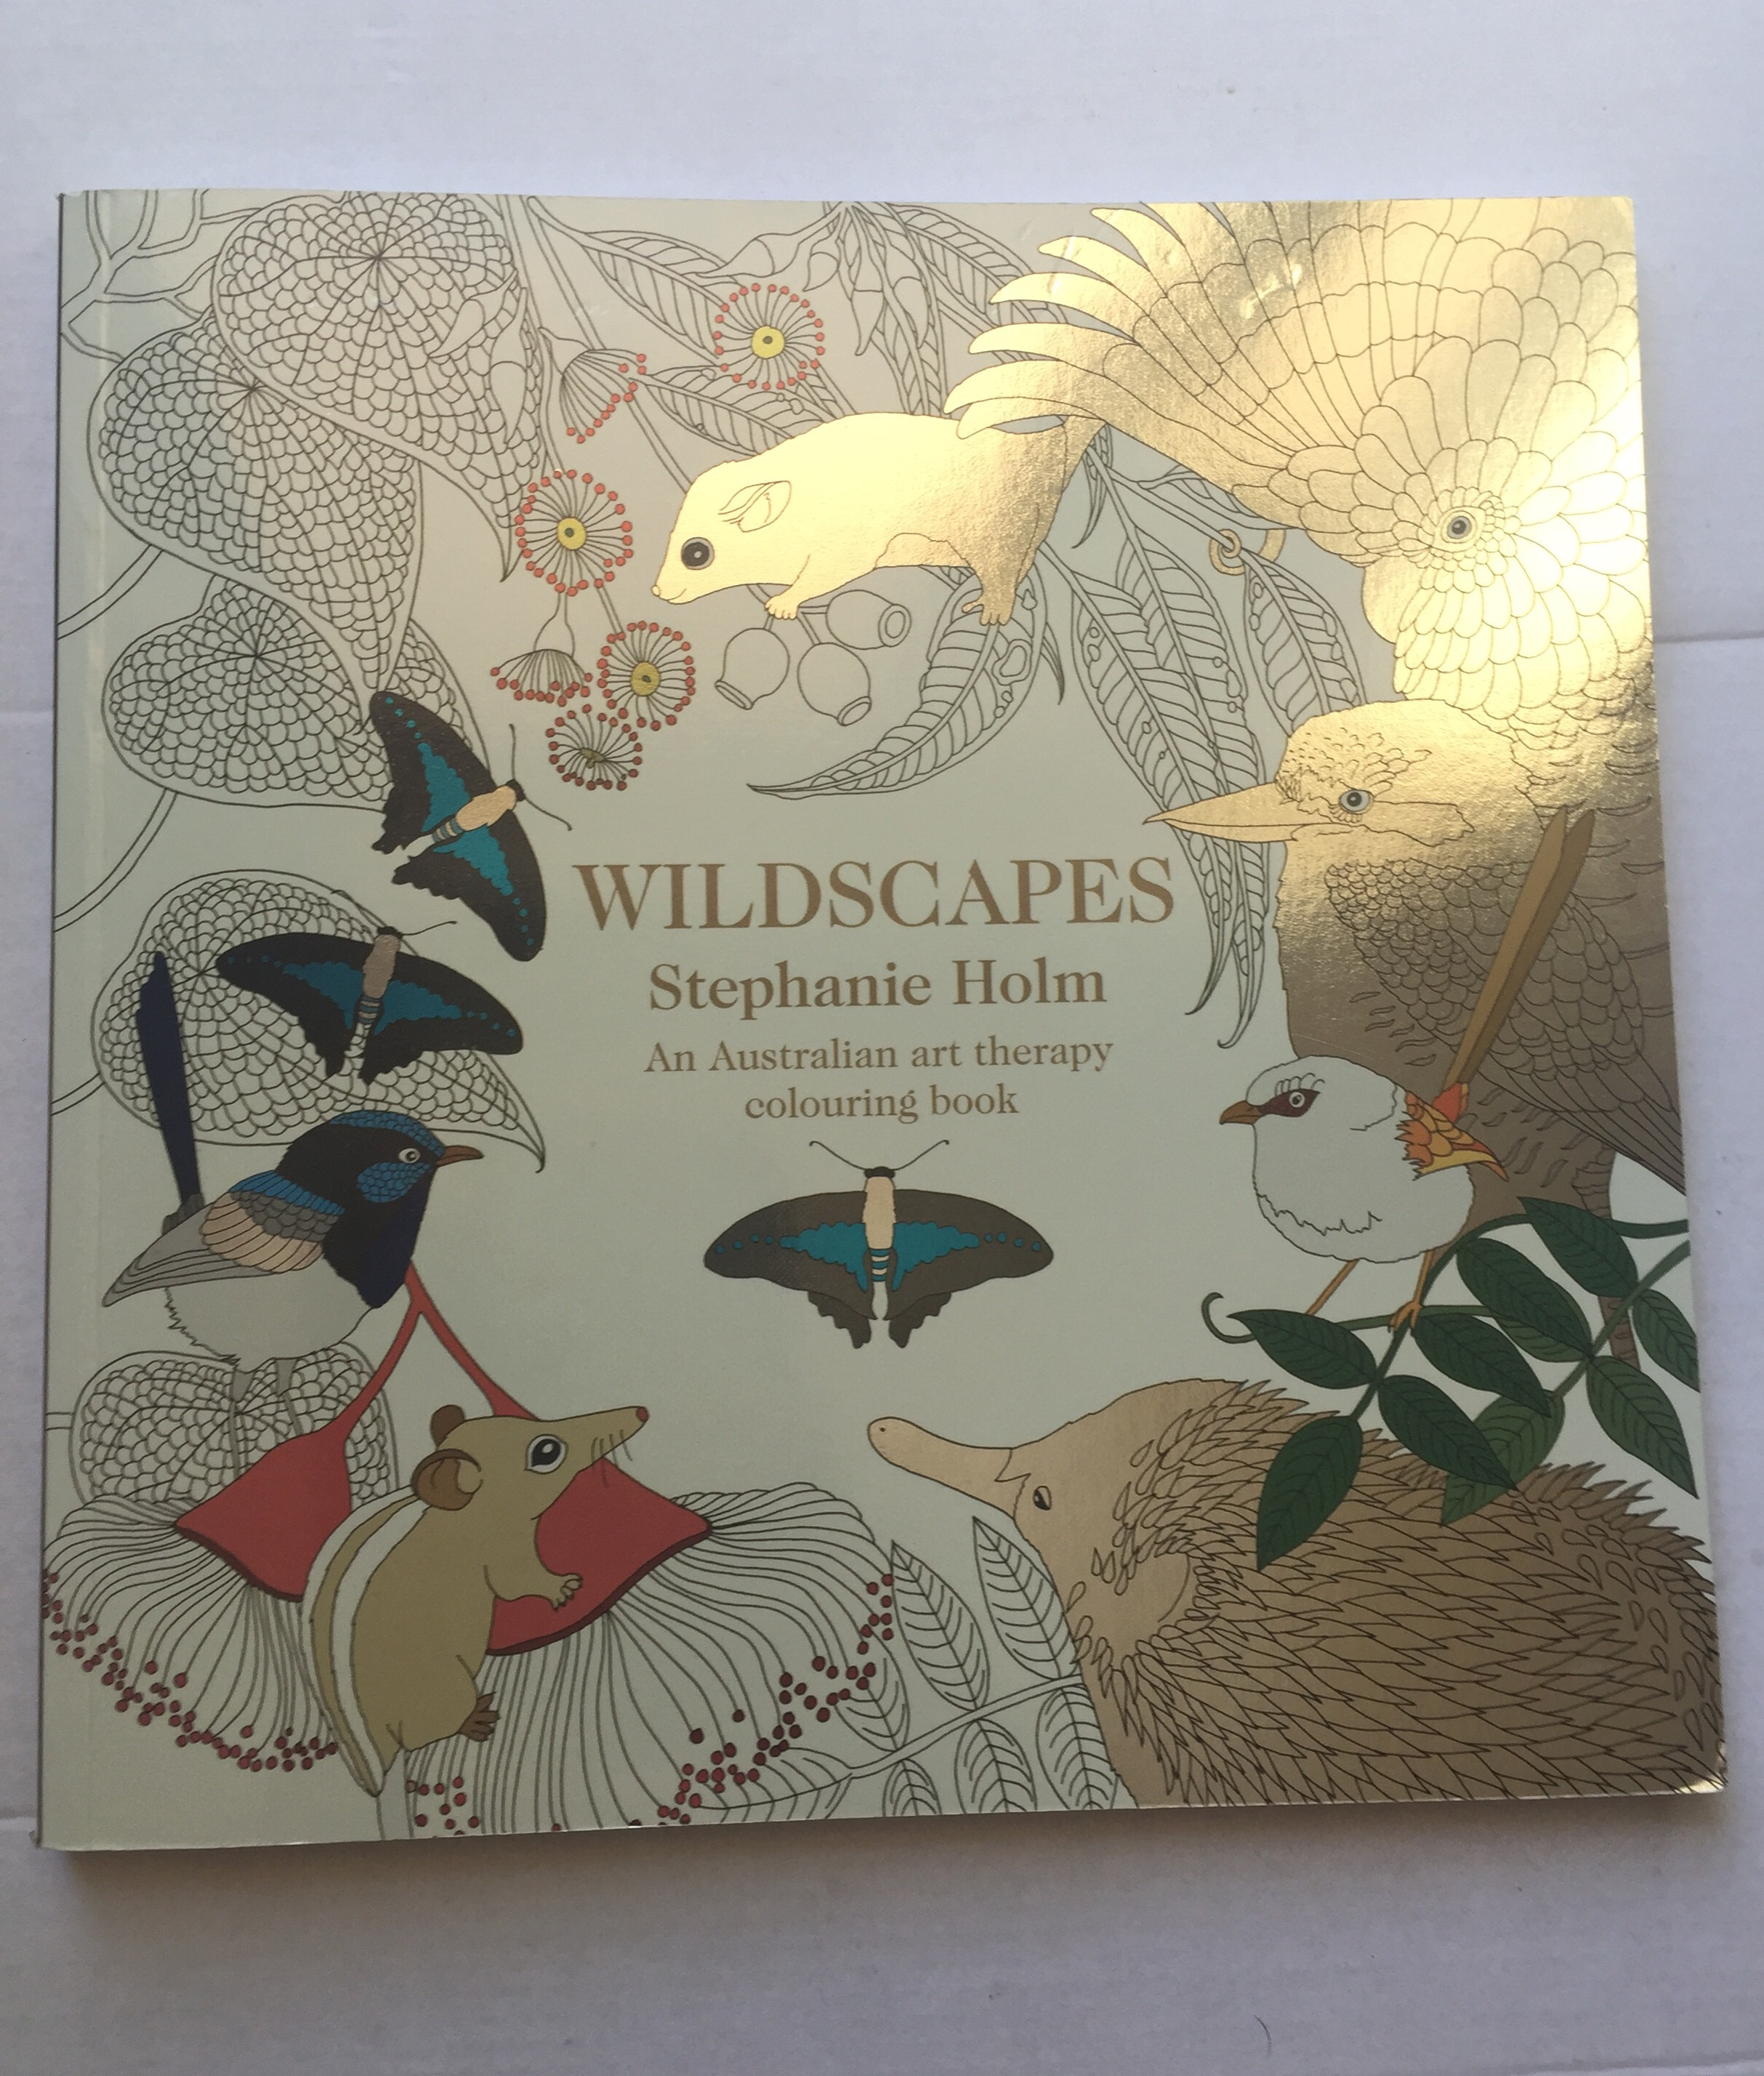 wildscapes art therapy colouring coloring in pencils animal australian australia stephanie holm stress mindfulness